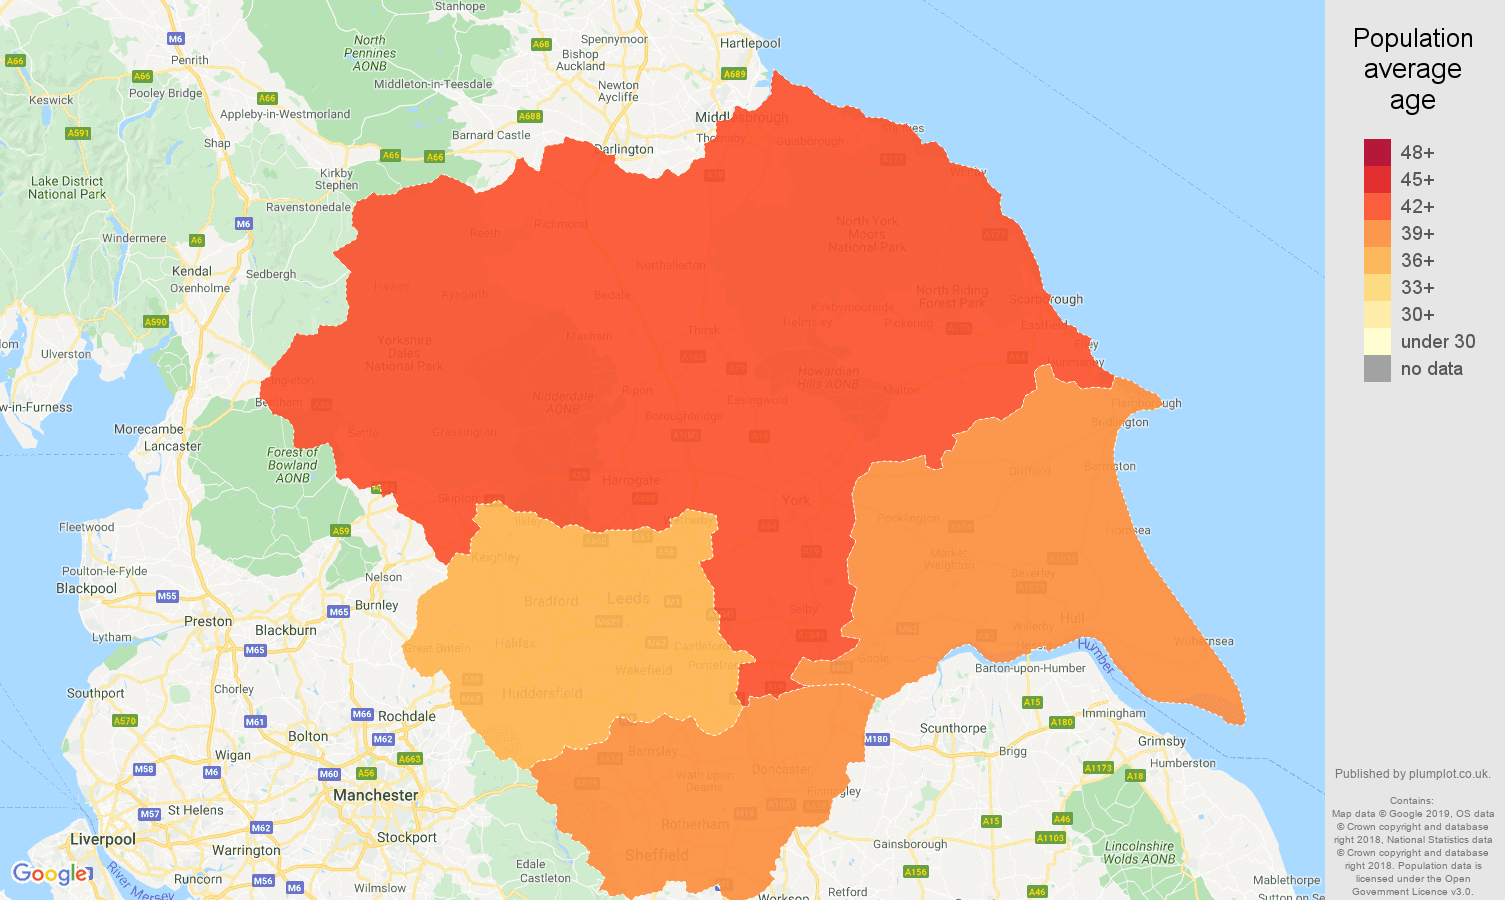 Yorkshire population average age map